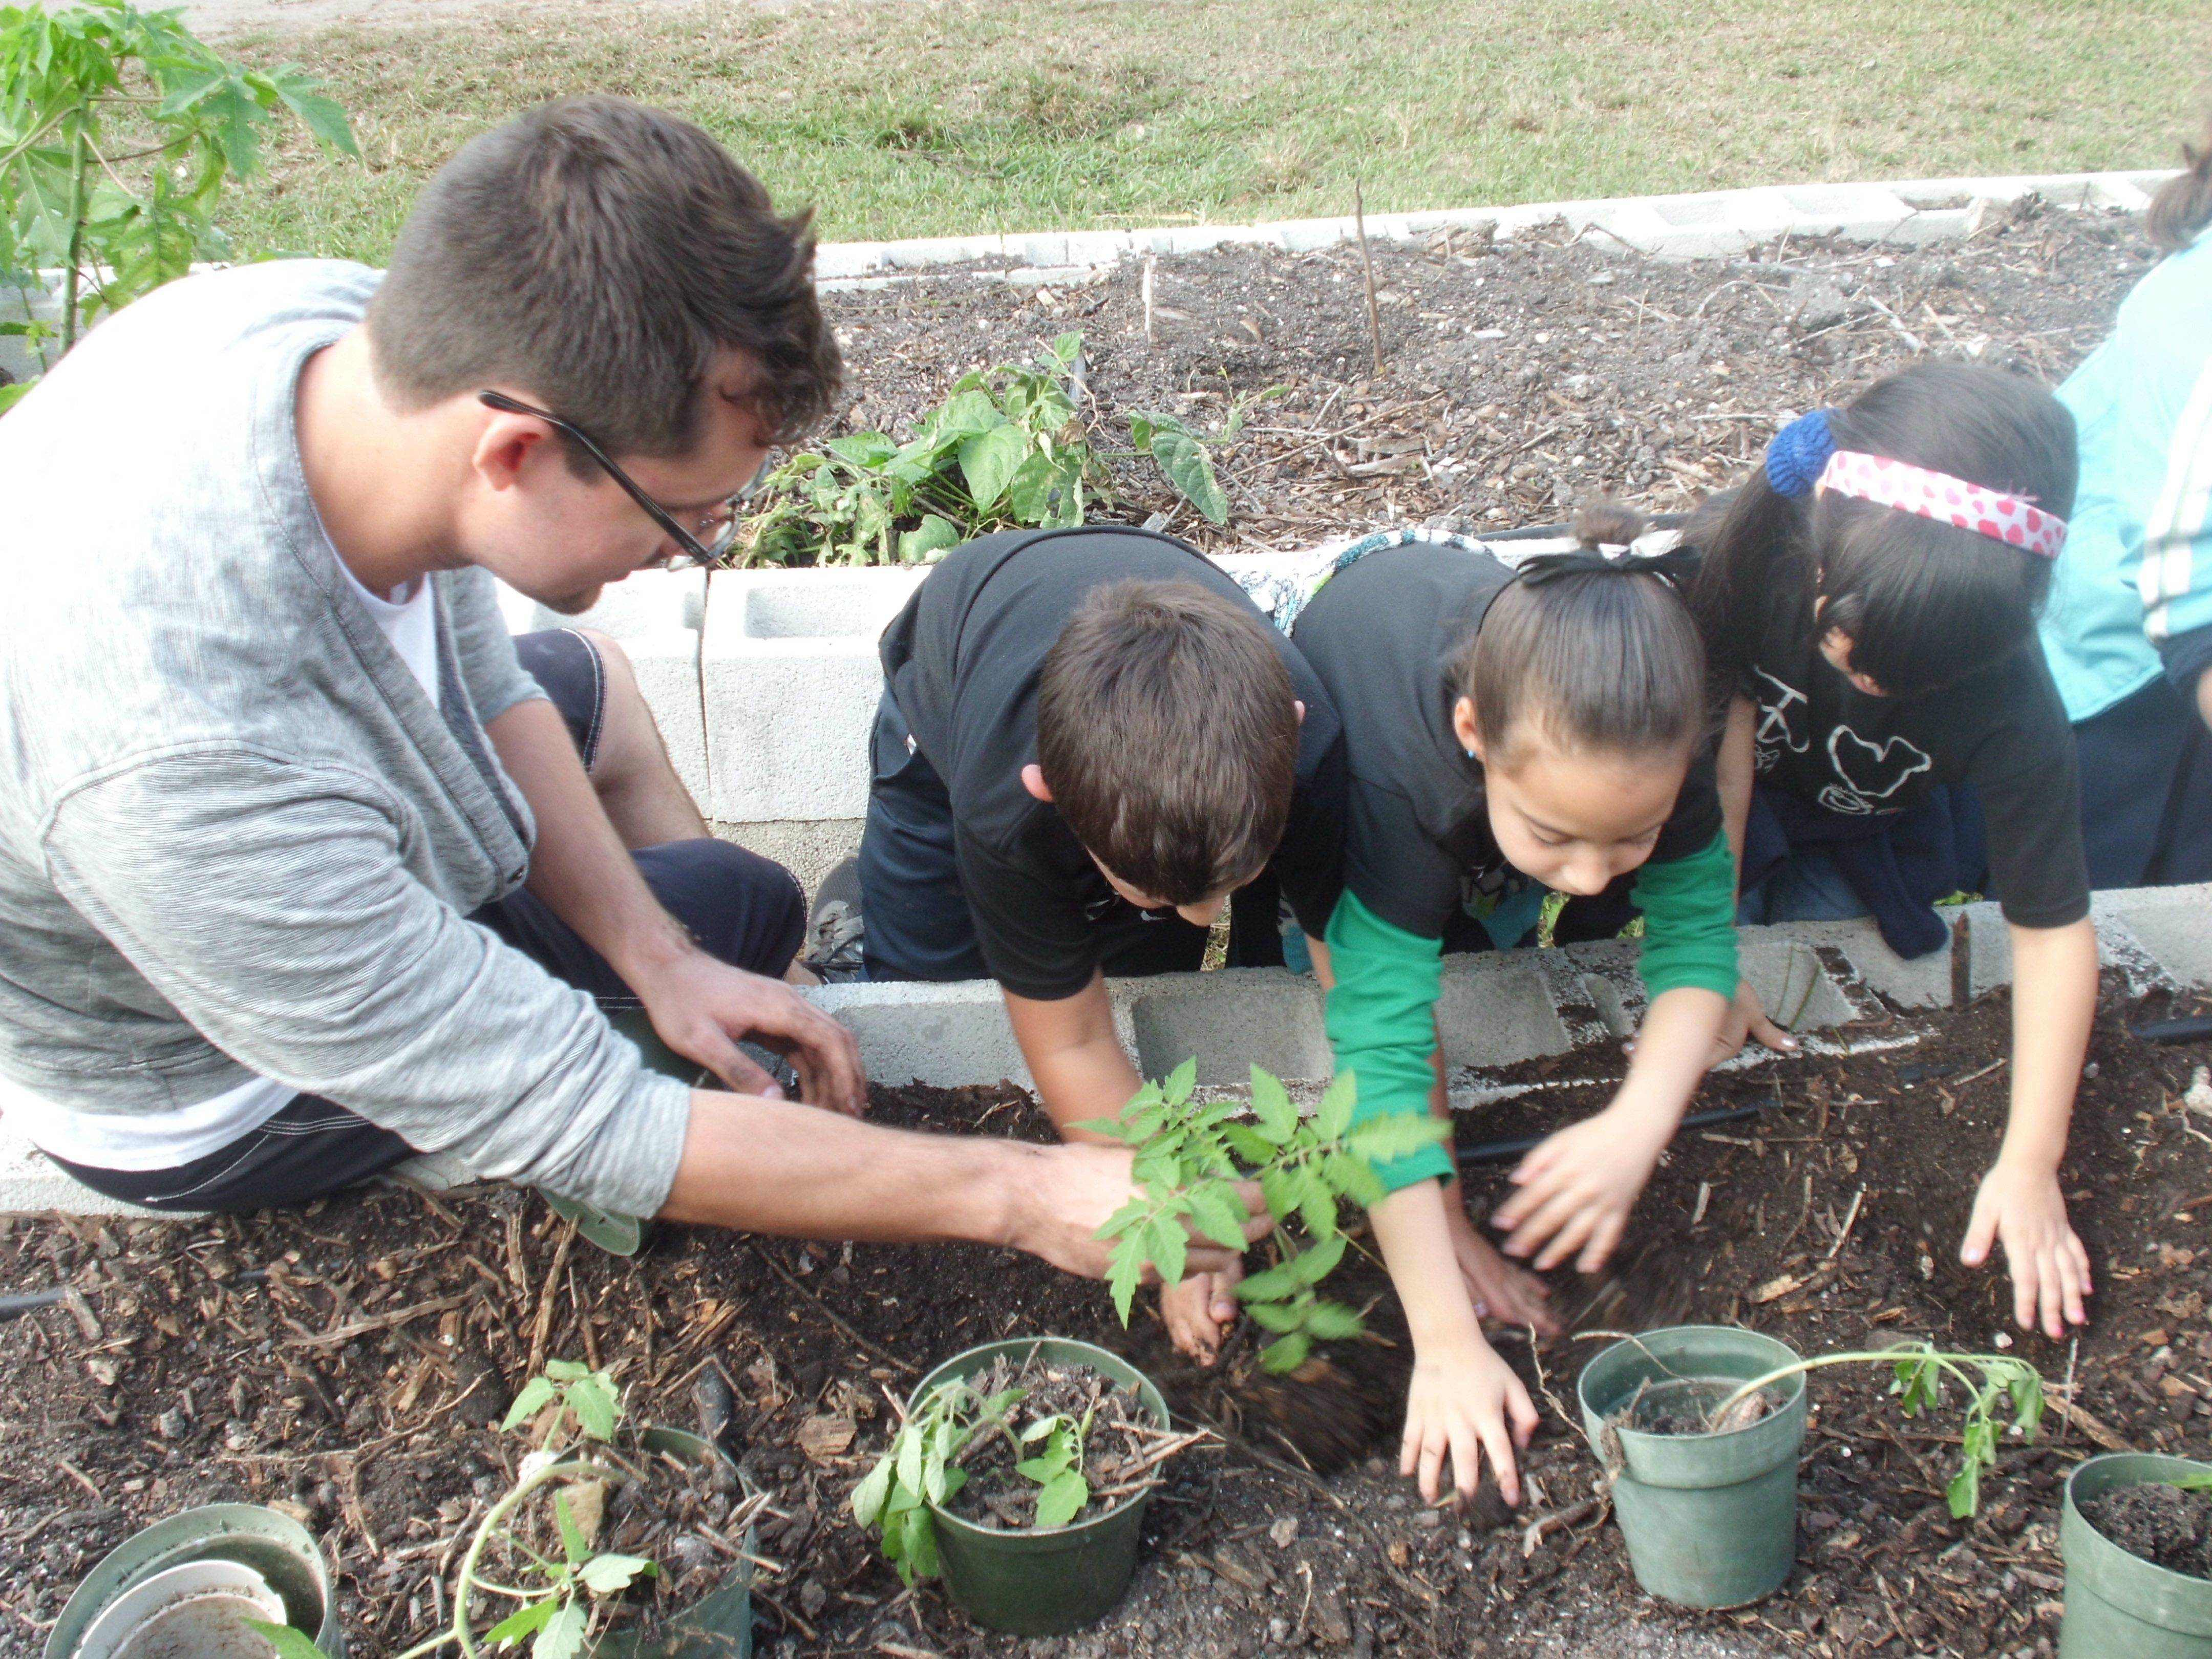 Kindergarteners learn about food systems at FIU's Organic Garden